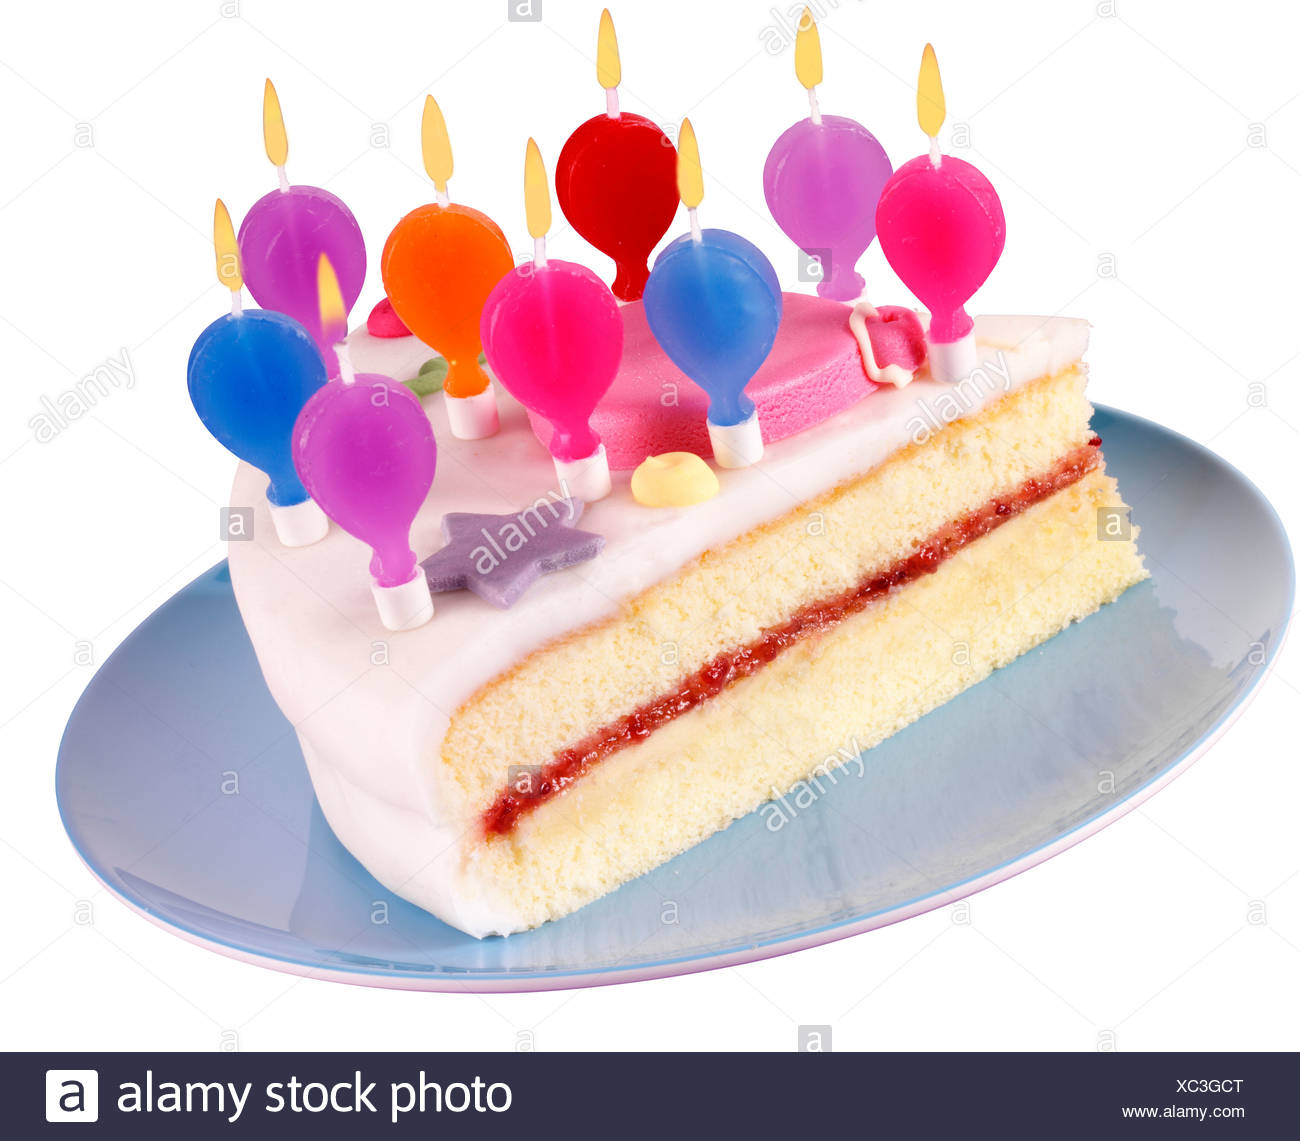 Cut Out Slice Of Birthday Cake With Lit Candles Stock Photo